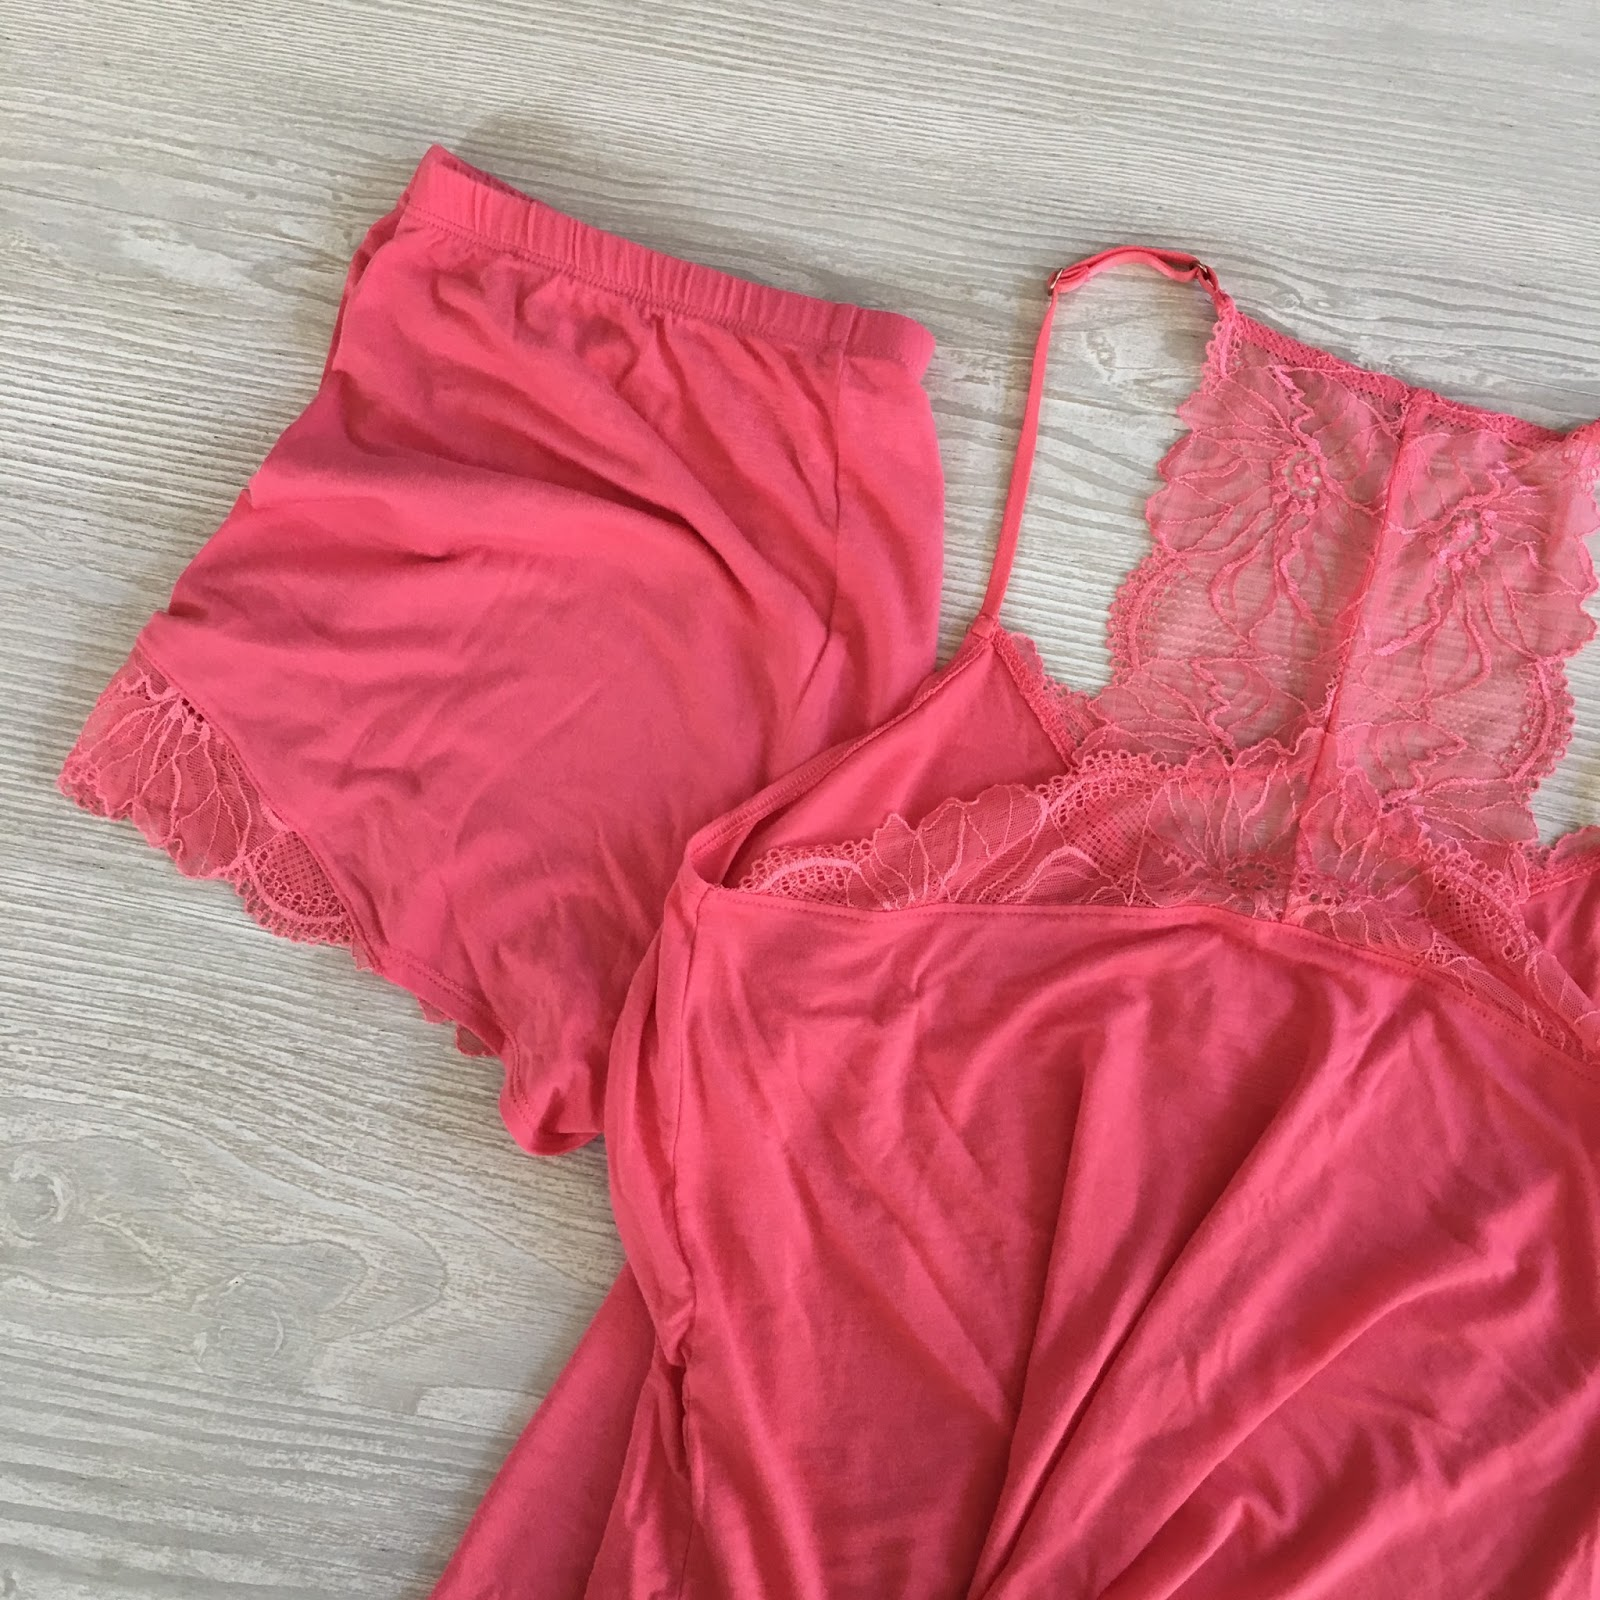 orange lace pj set